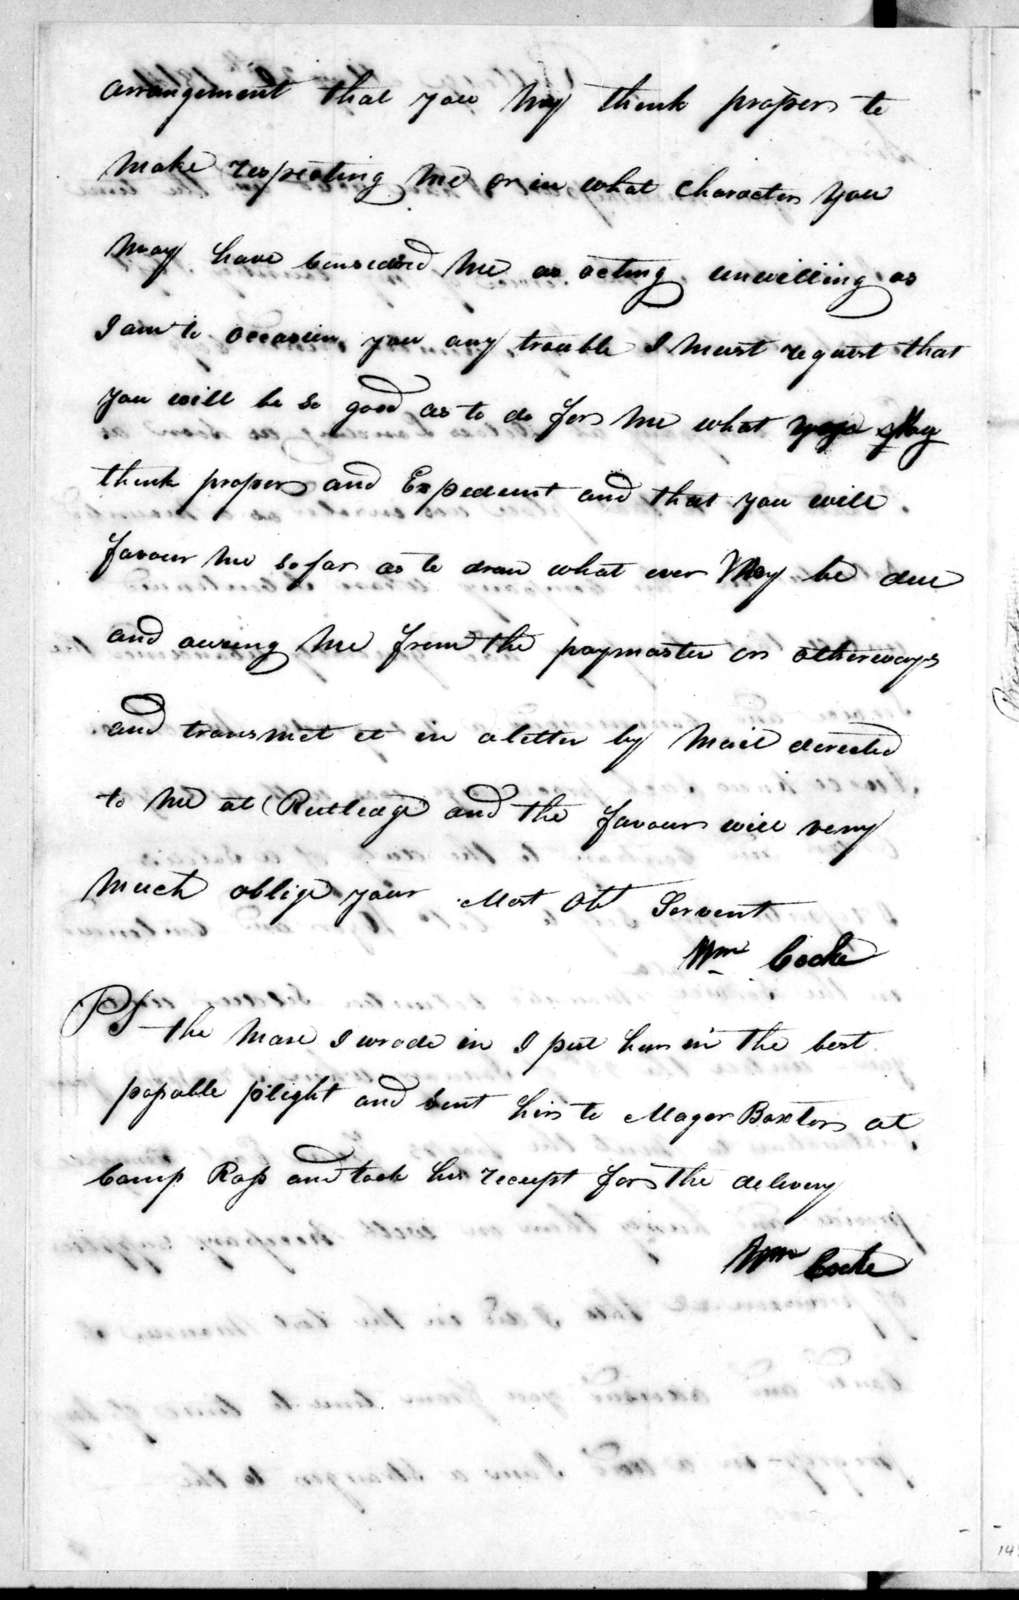 William Cocke to Andrew Jackson, May 20, 1814